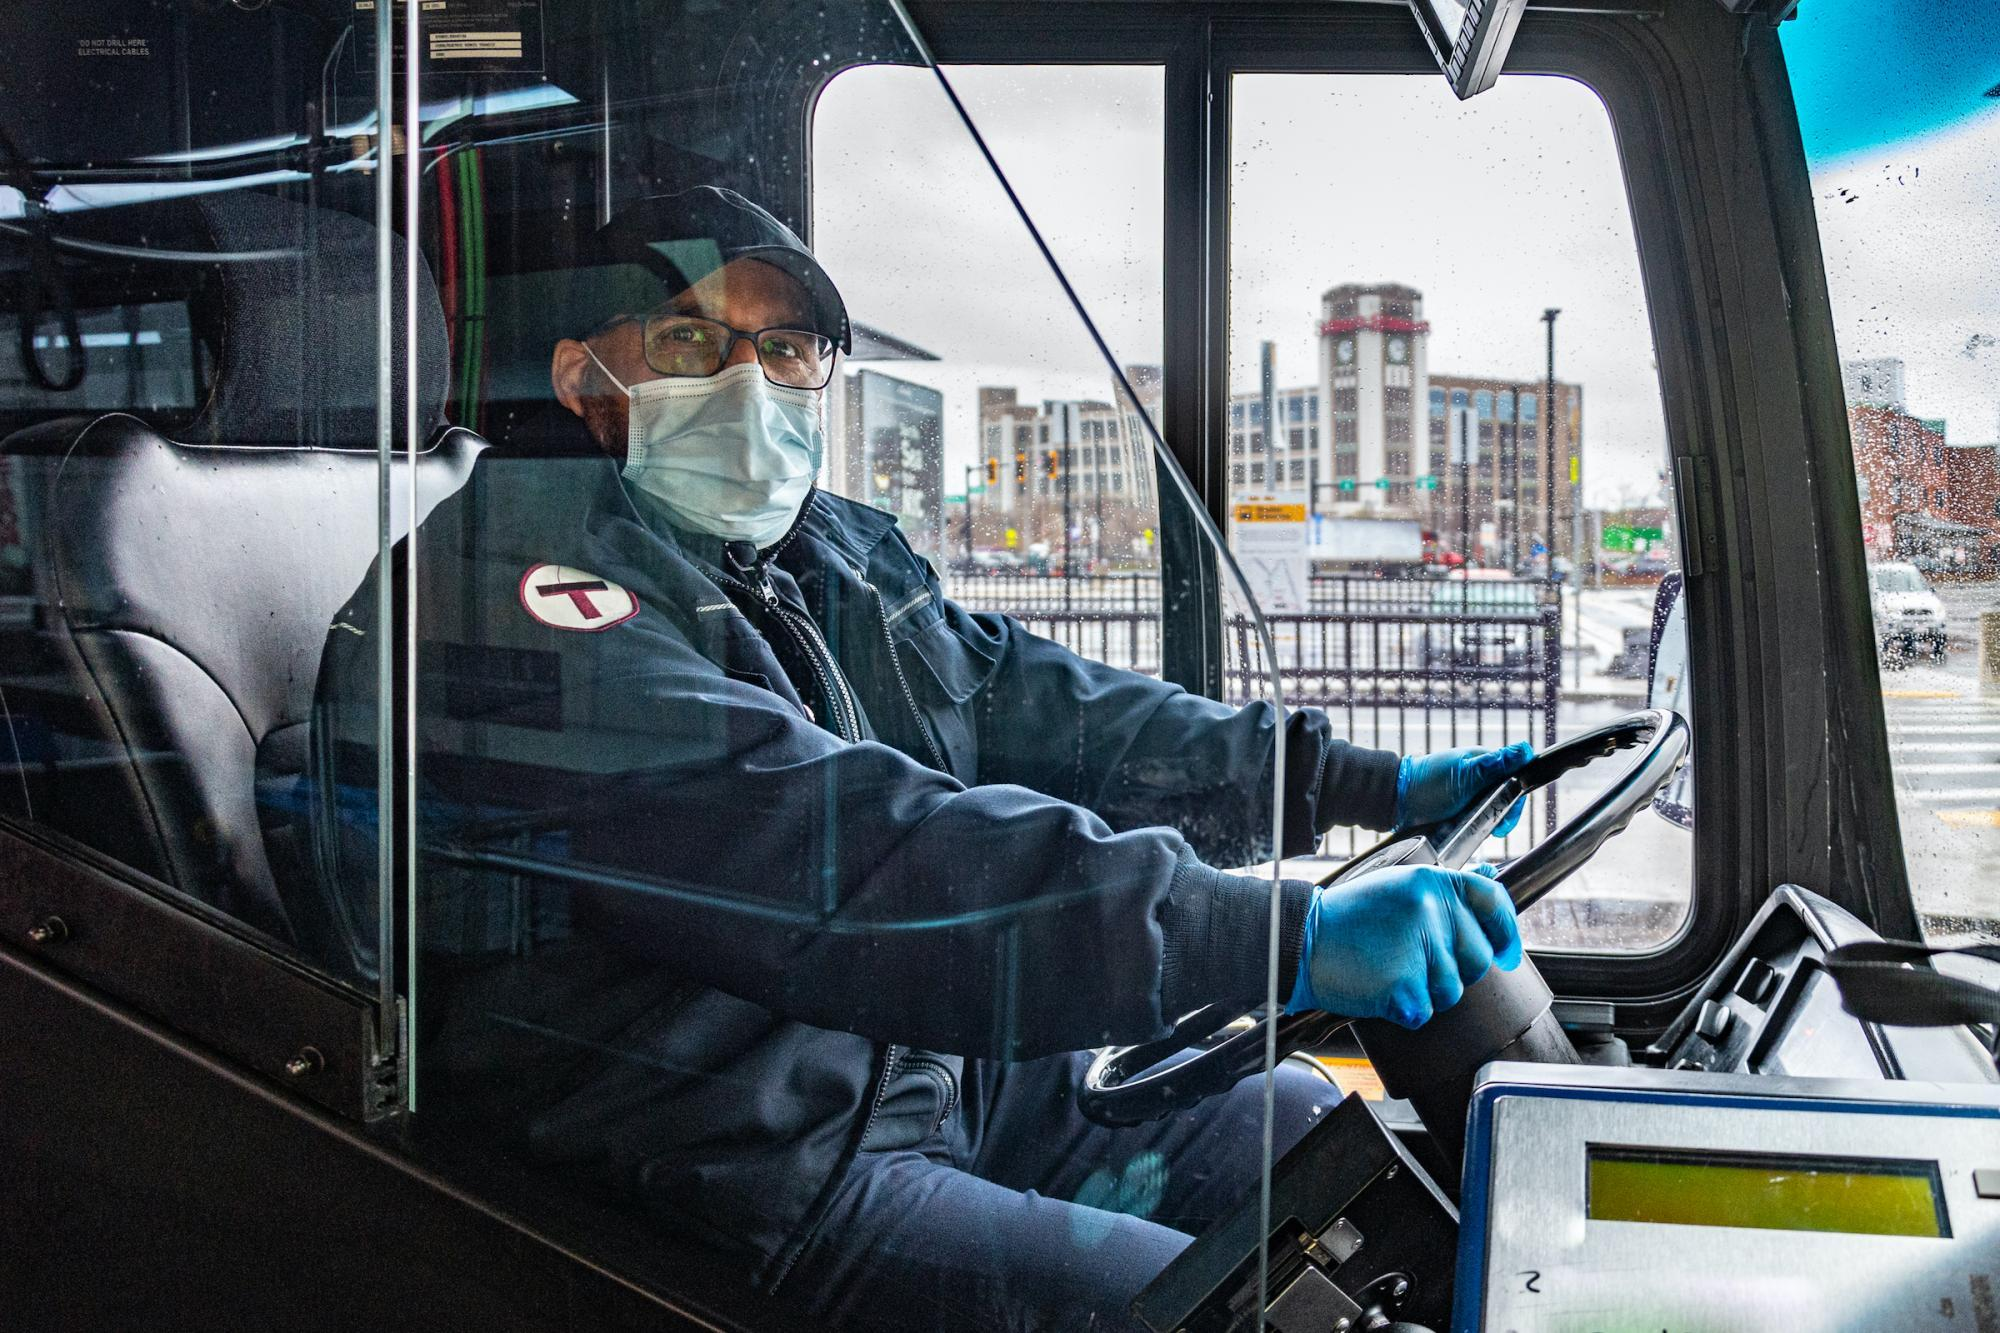 Operator driving bus at Sullivan Square, wearing a face covering and gloves